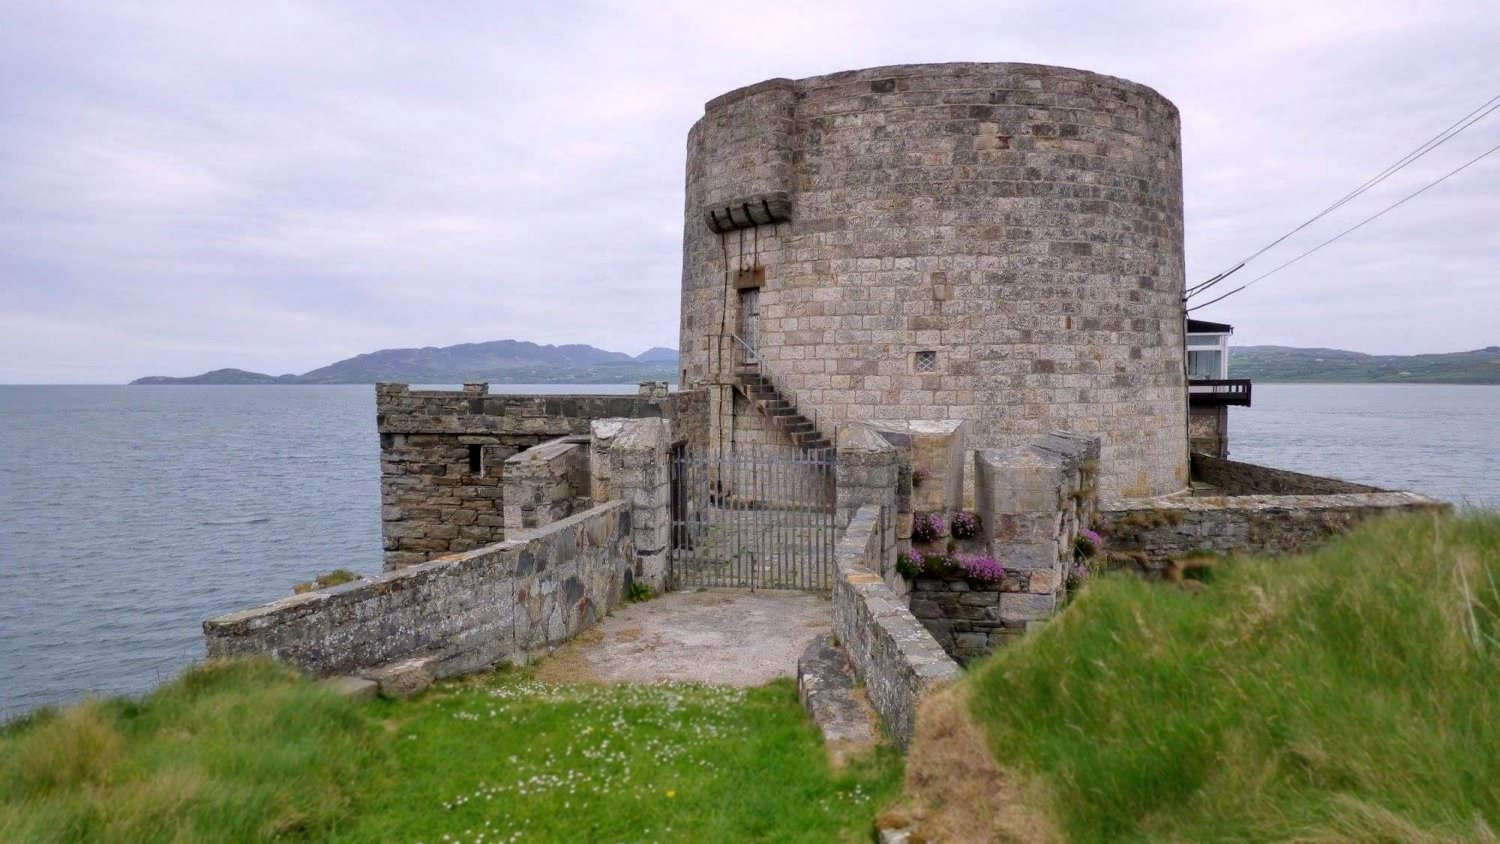 Macamish Fort on western shore of Lough Swilly